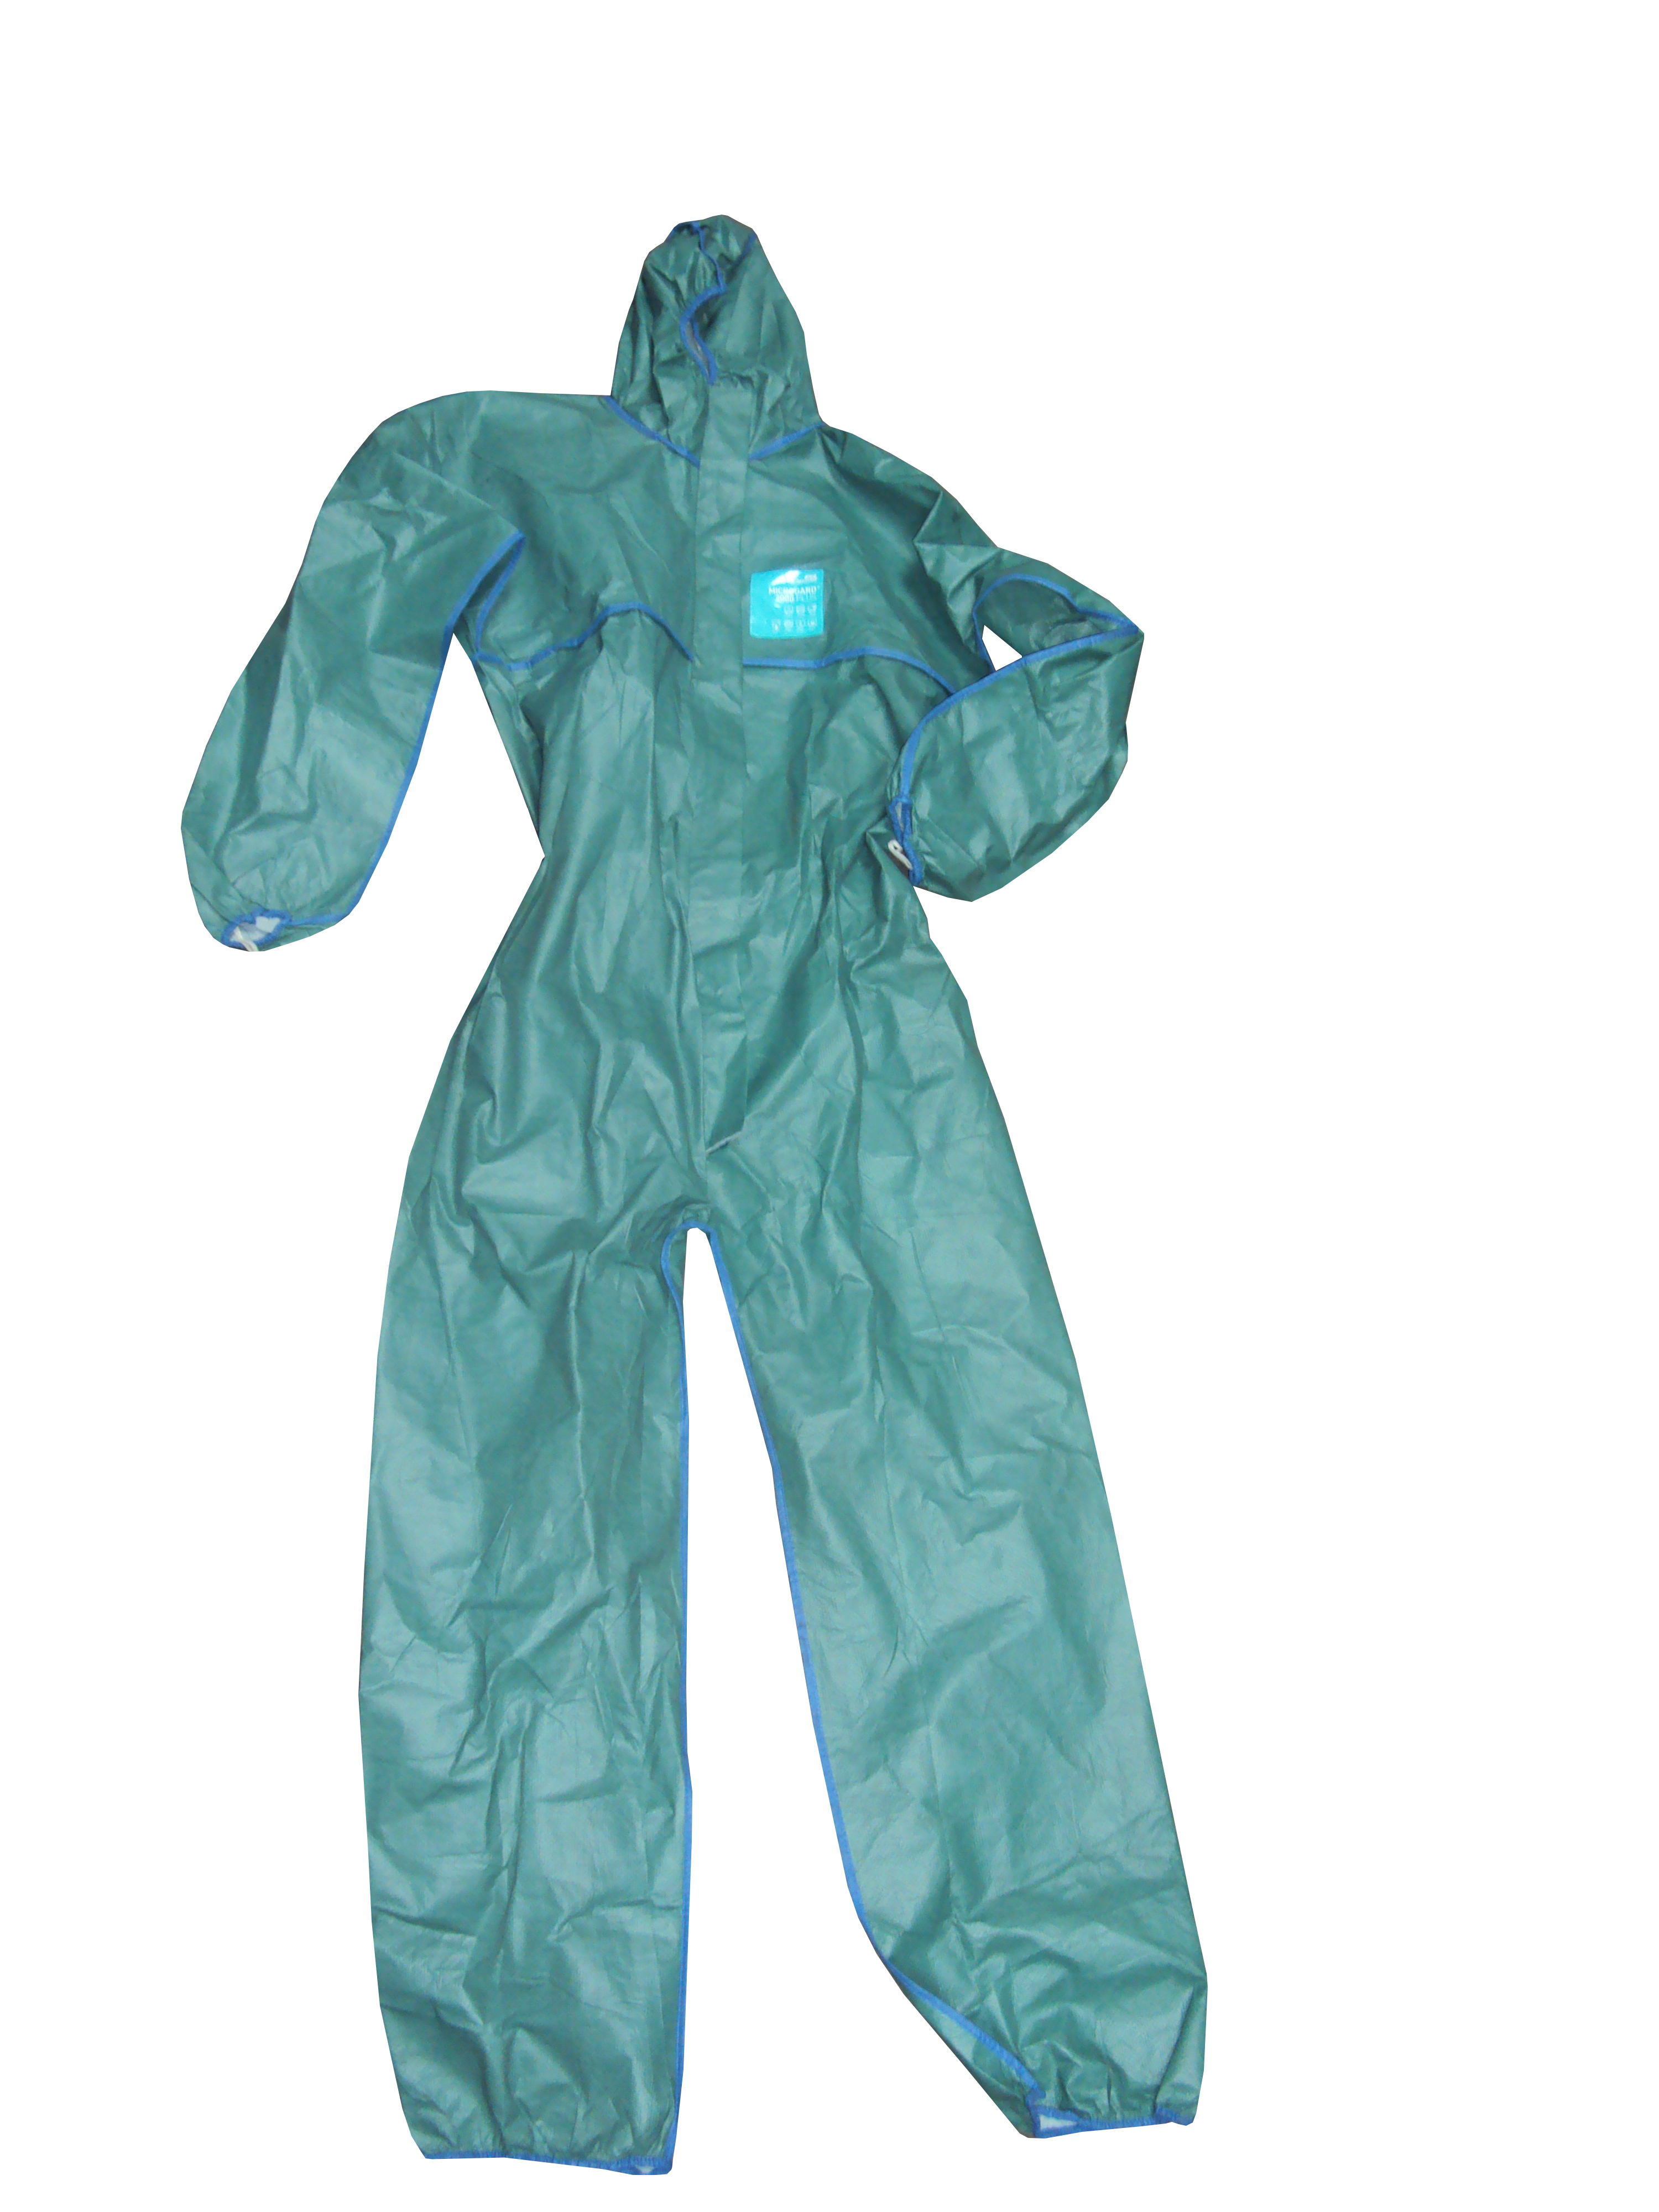 Lot 14 - Pack of 40 - Microguard 200 Plus Coverall - Medium - New